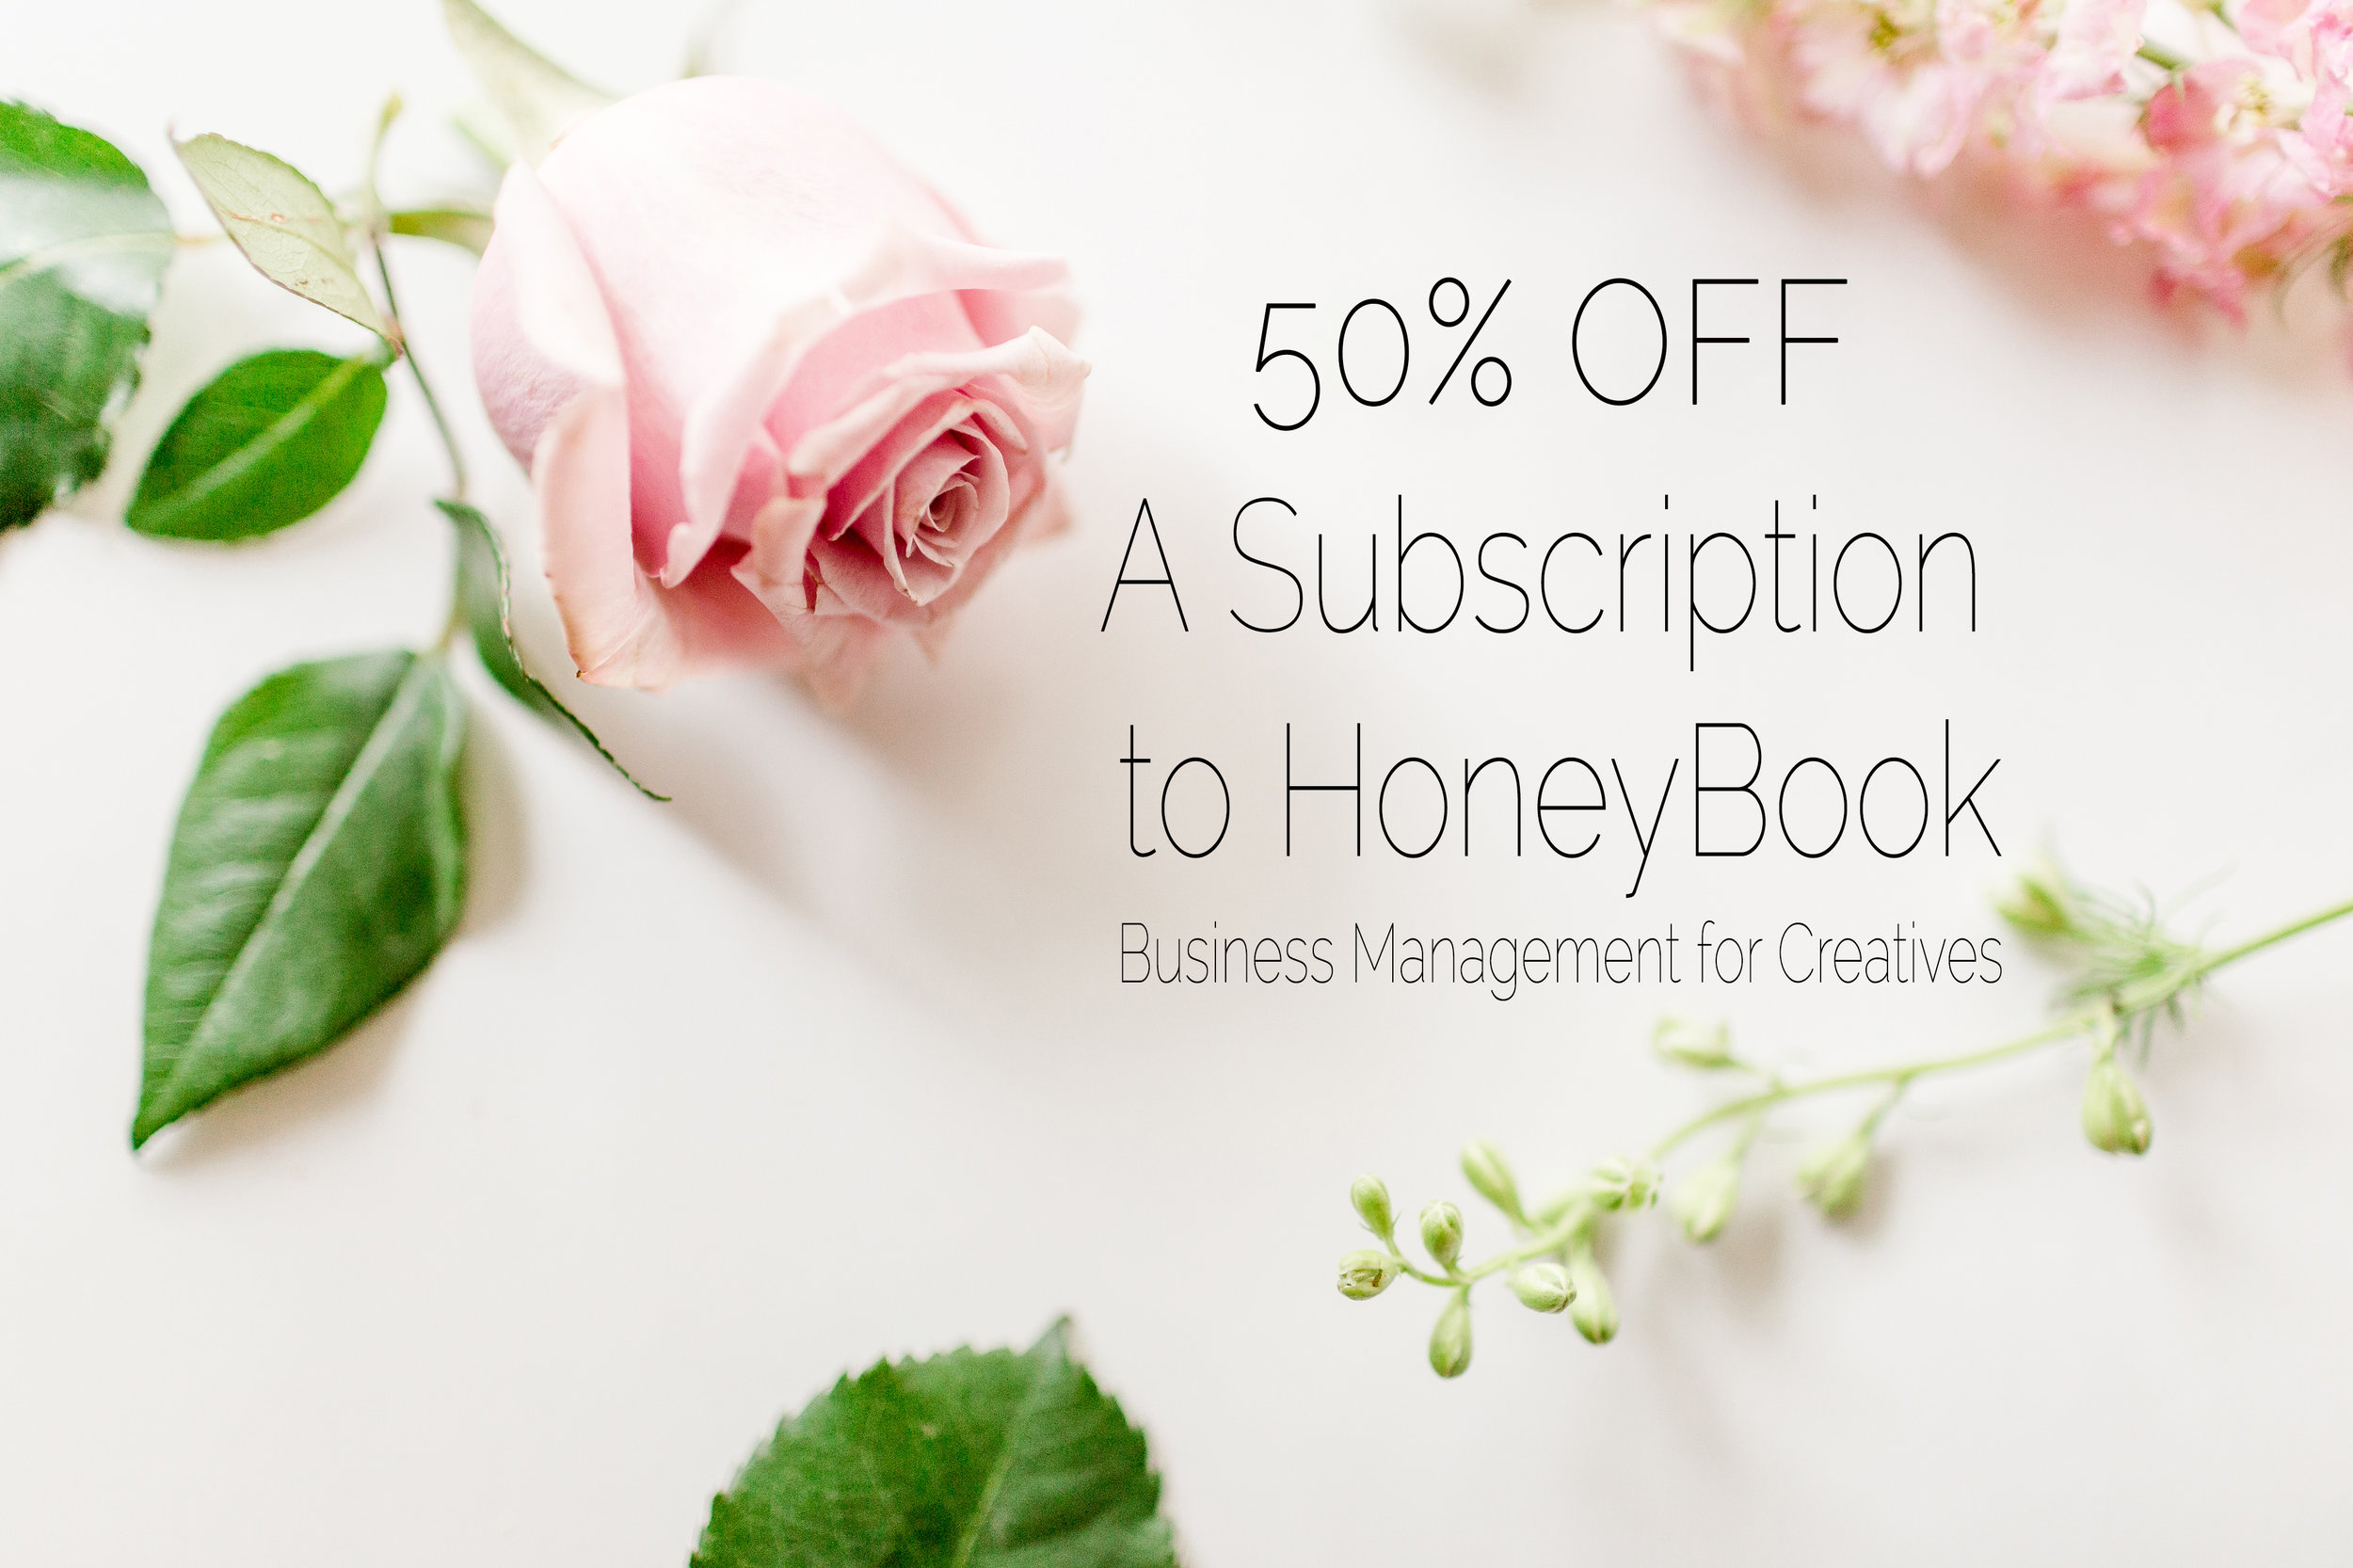 50%offHoneyBook.jpg